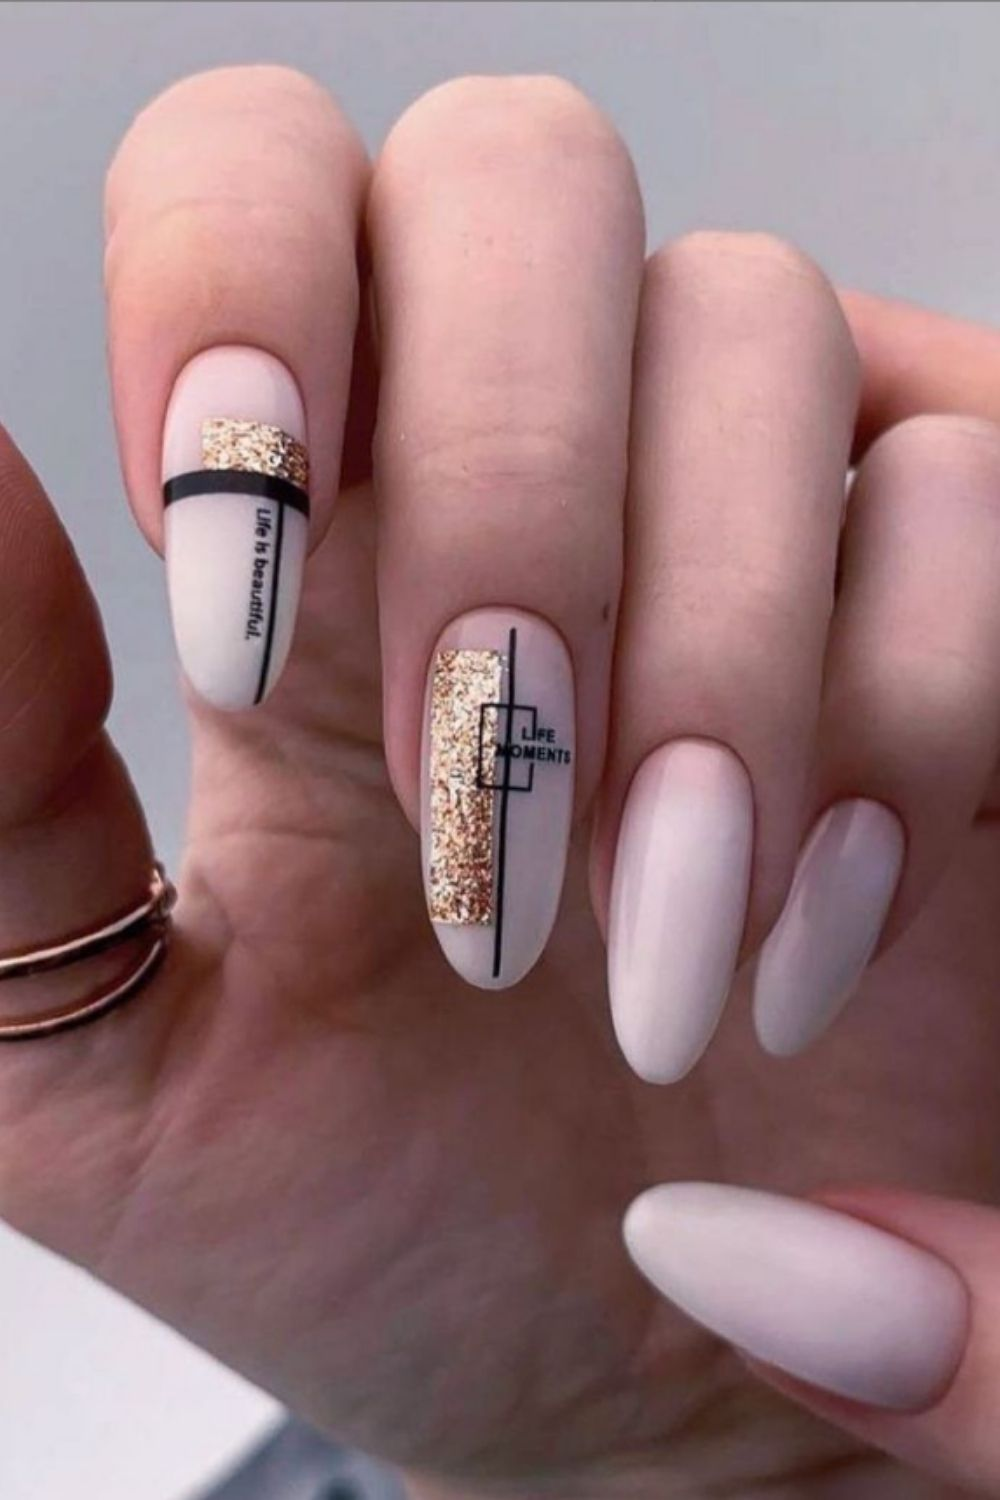 Almond Acrylic Nails: 40 Awesome Summer Nail Designs To Inspire You!